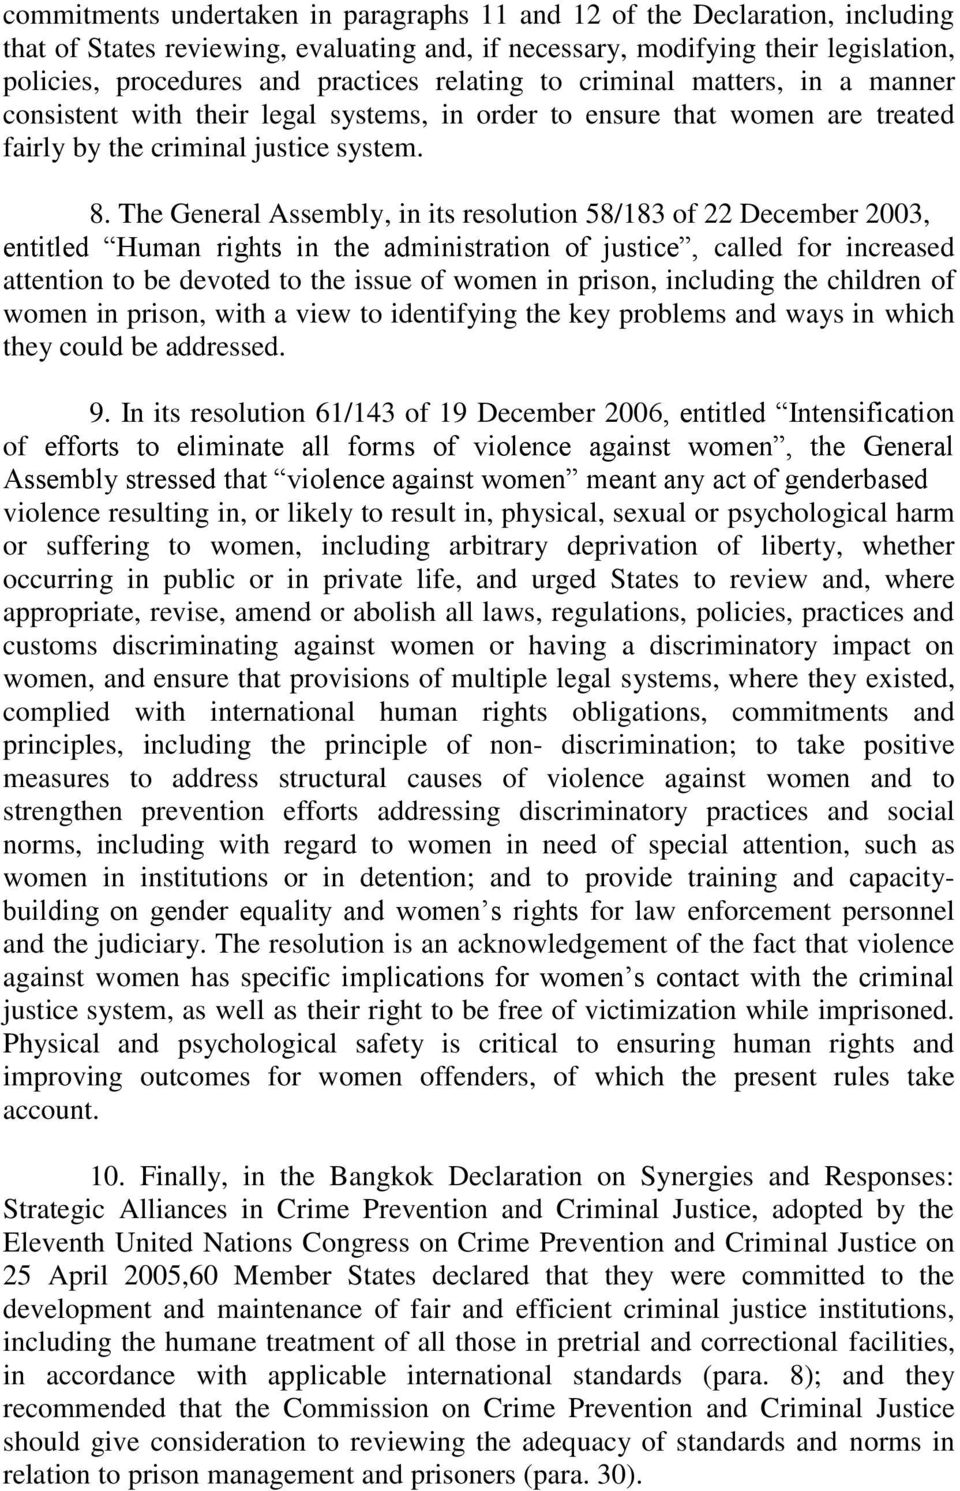 The General Assembly, in its resolution 58/183 of 22 December 2003, entitled Human rights in the administration of justice, called for increased attention to be devoted to the issue of women in